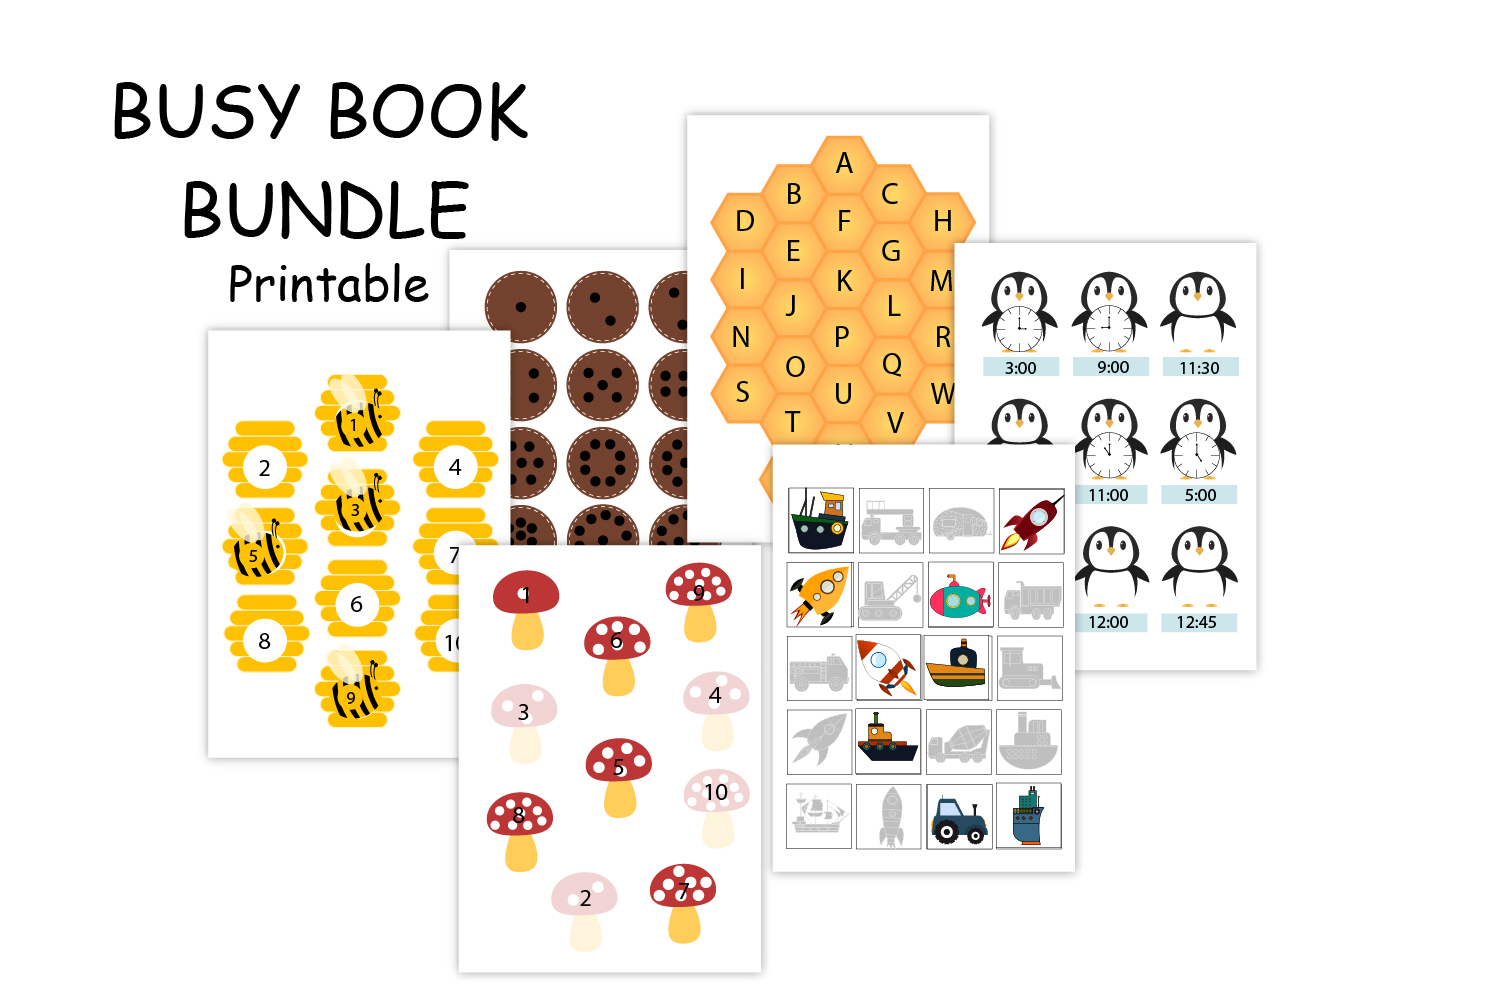 Download Free Printable Busy Book Quiet Book Graphic By Igraphic Studio for Cricut Explore, Silhouette and other cutting machines.